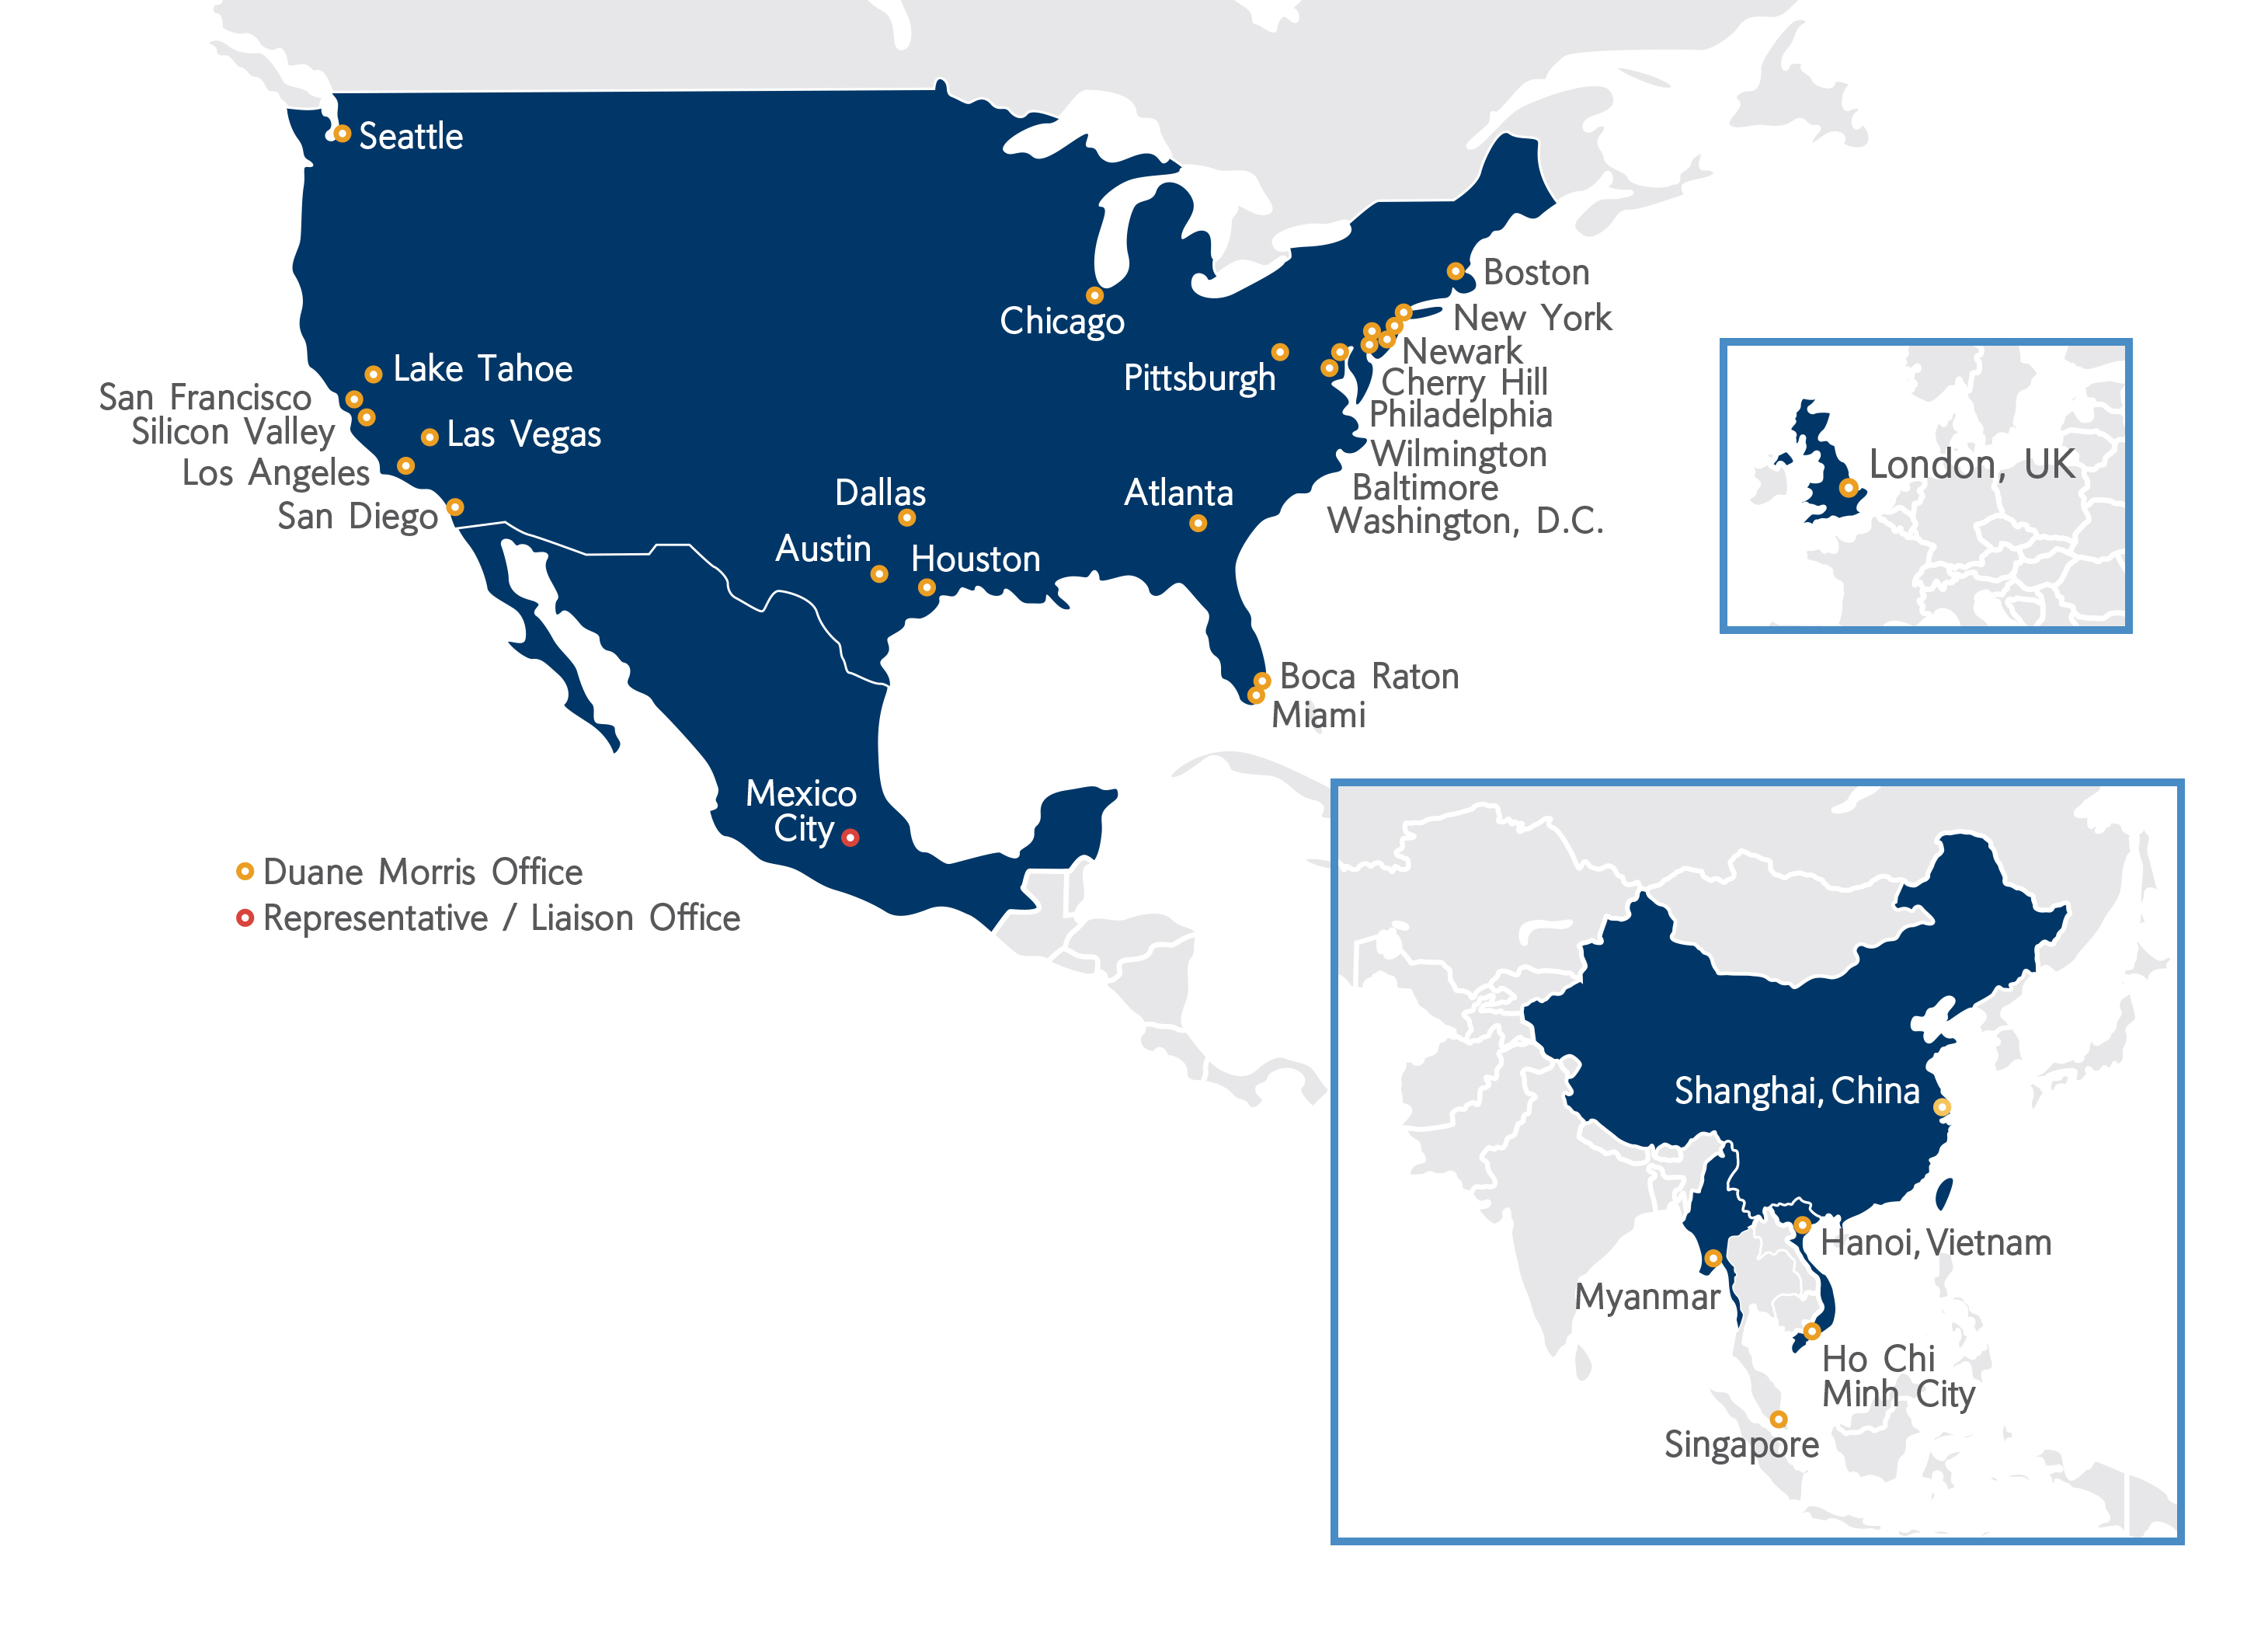 Duane Morris Offices Worldwide